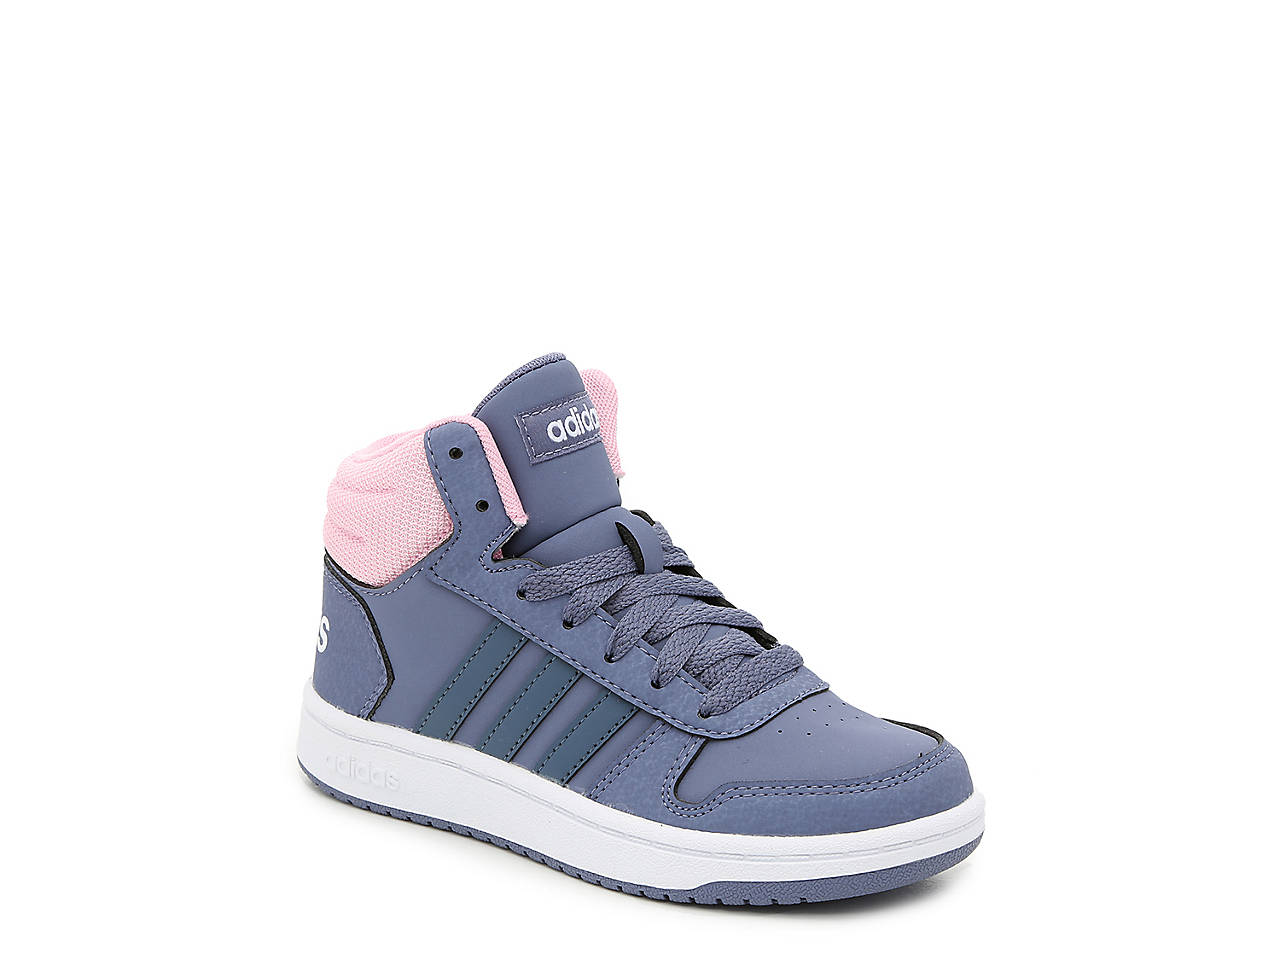 8332c3fd7 adidas Hoops Mid 2.0 Toddler & Youth High-Top Sneaker Kids Shoes | DSW